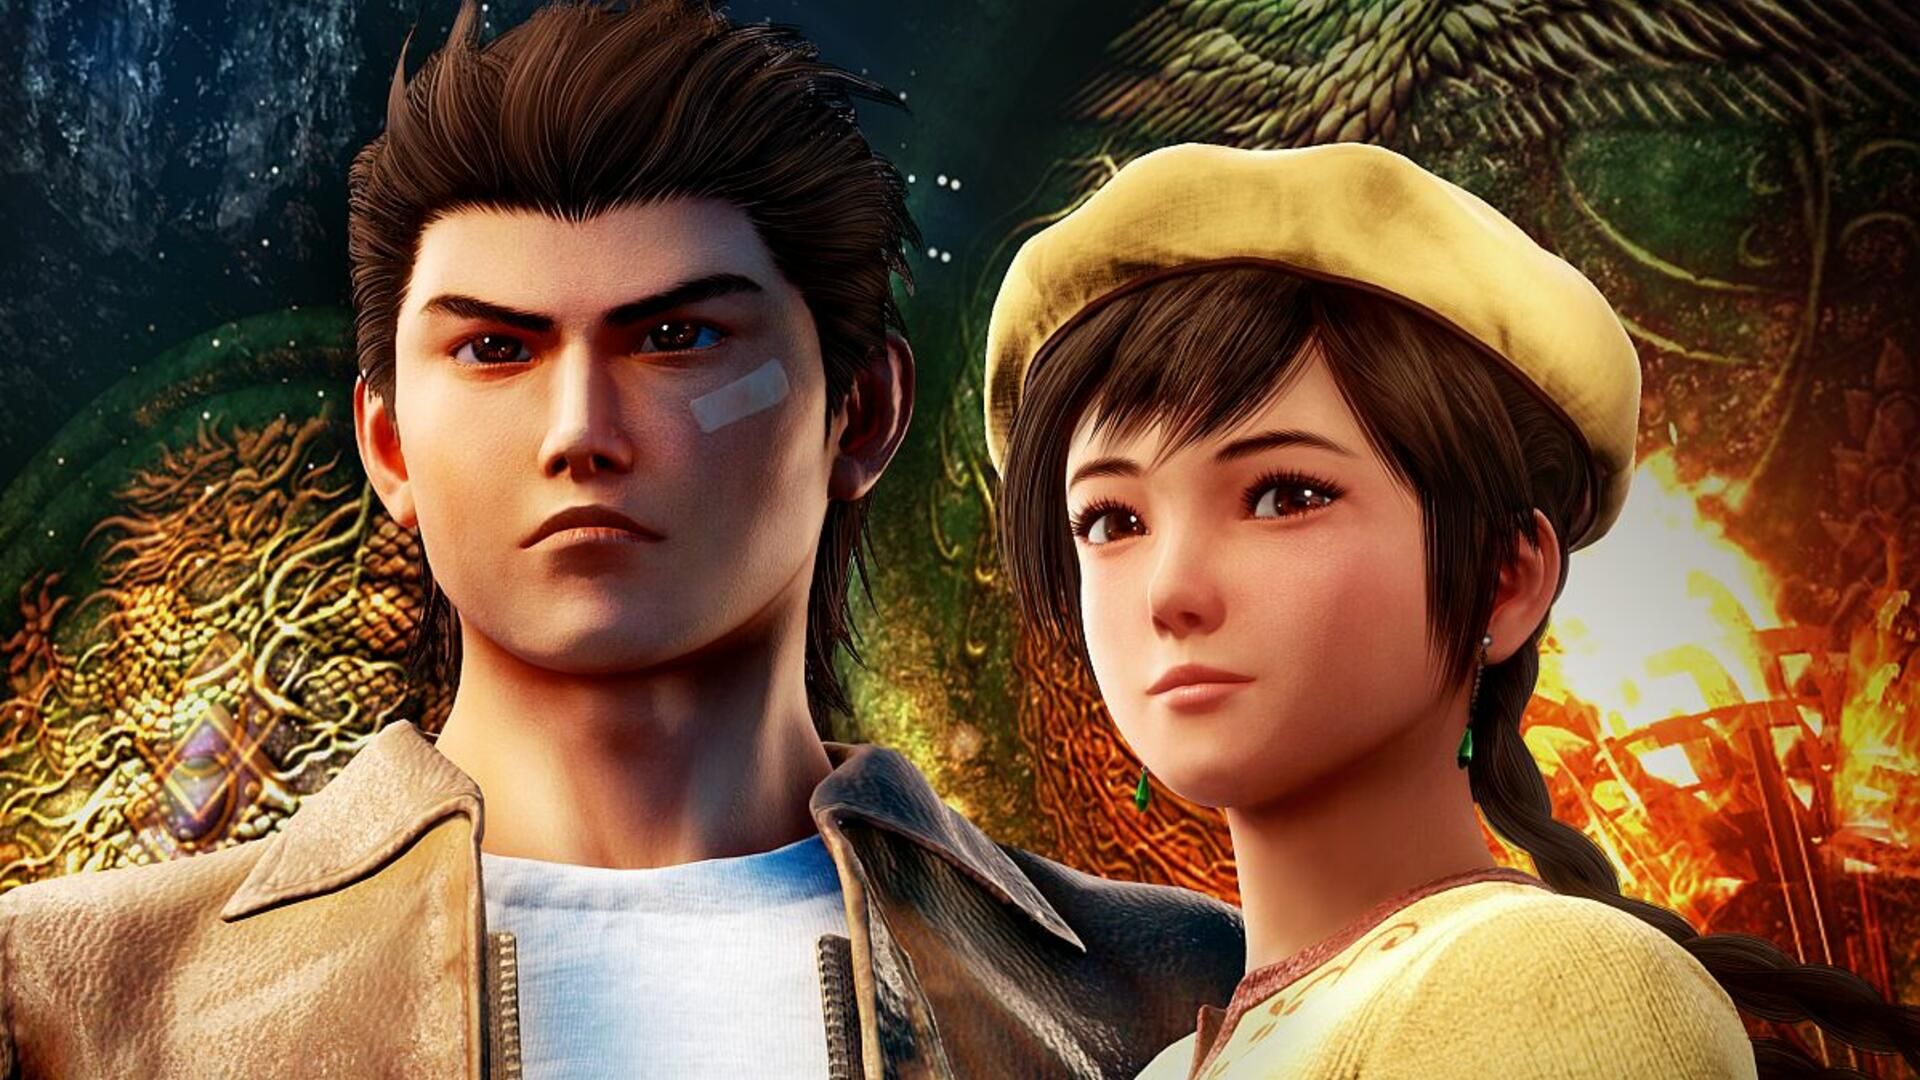 Shenmue 3 Feels Like a Modern Dreamcast Game